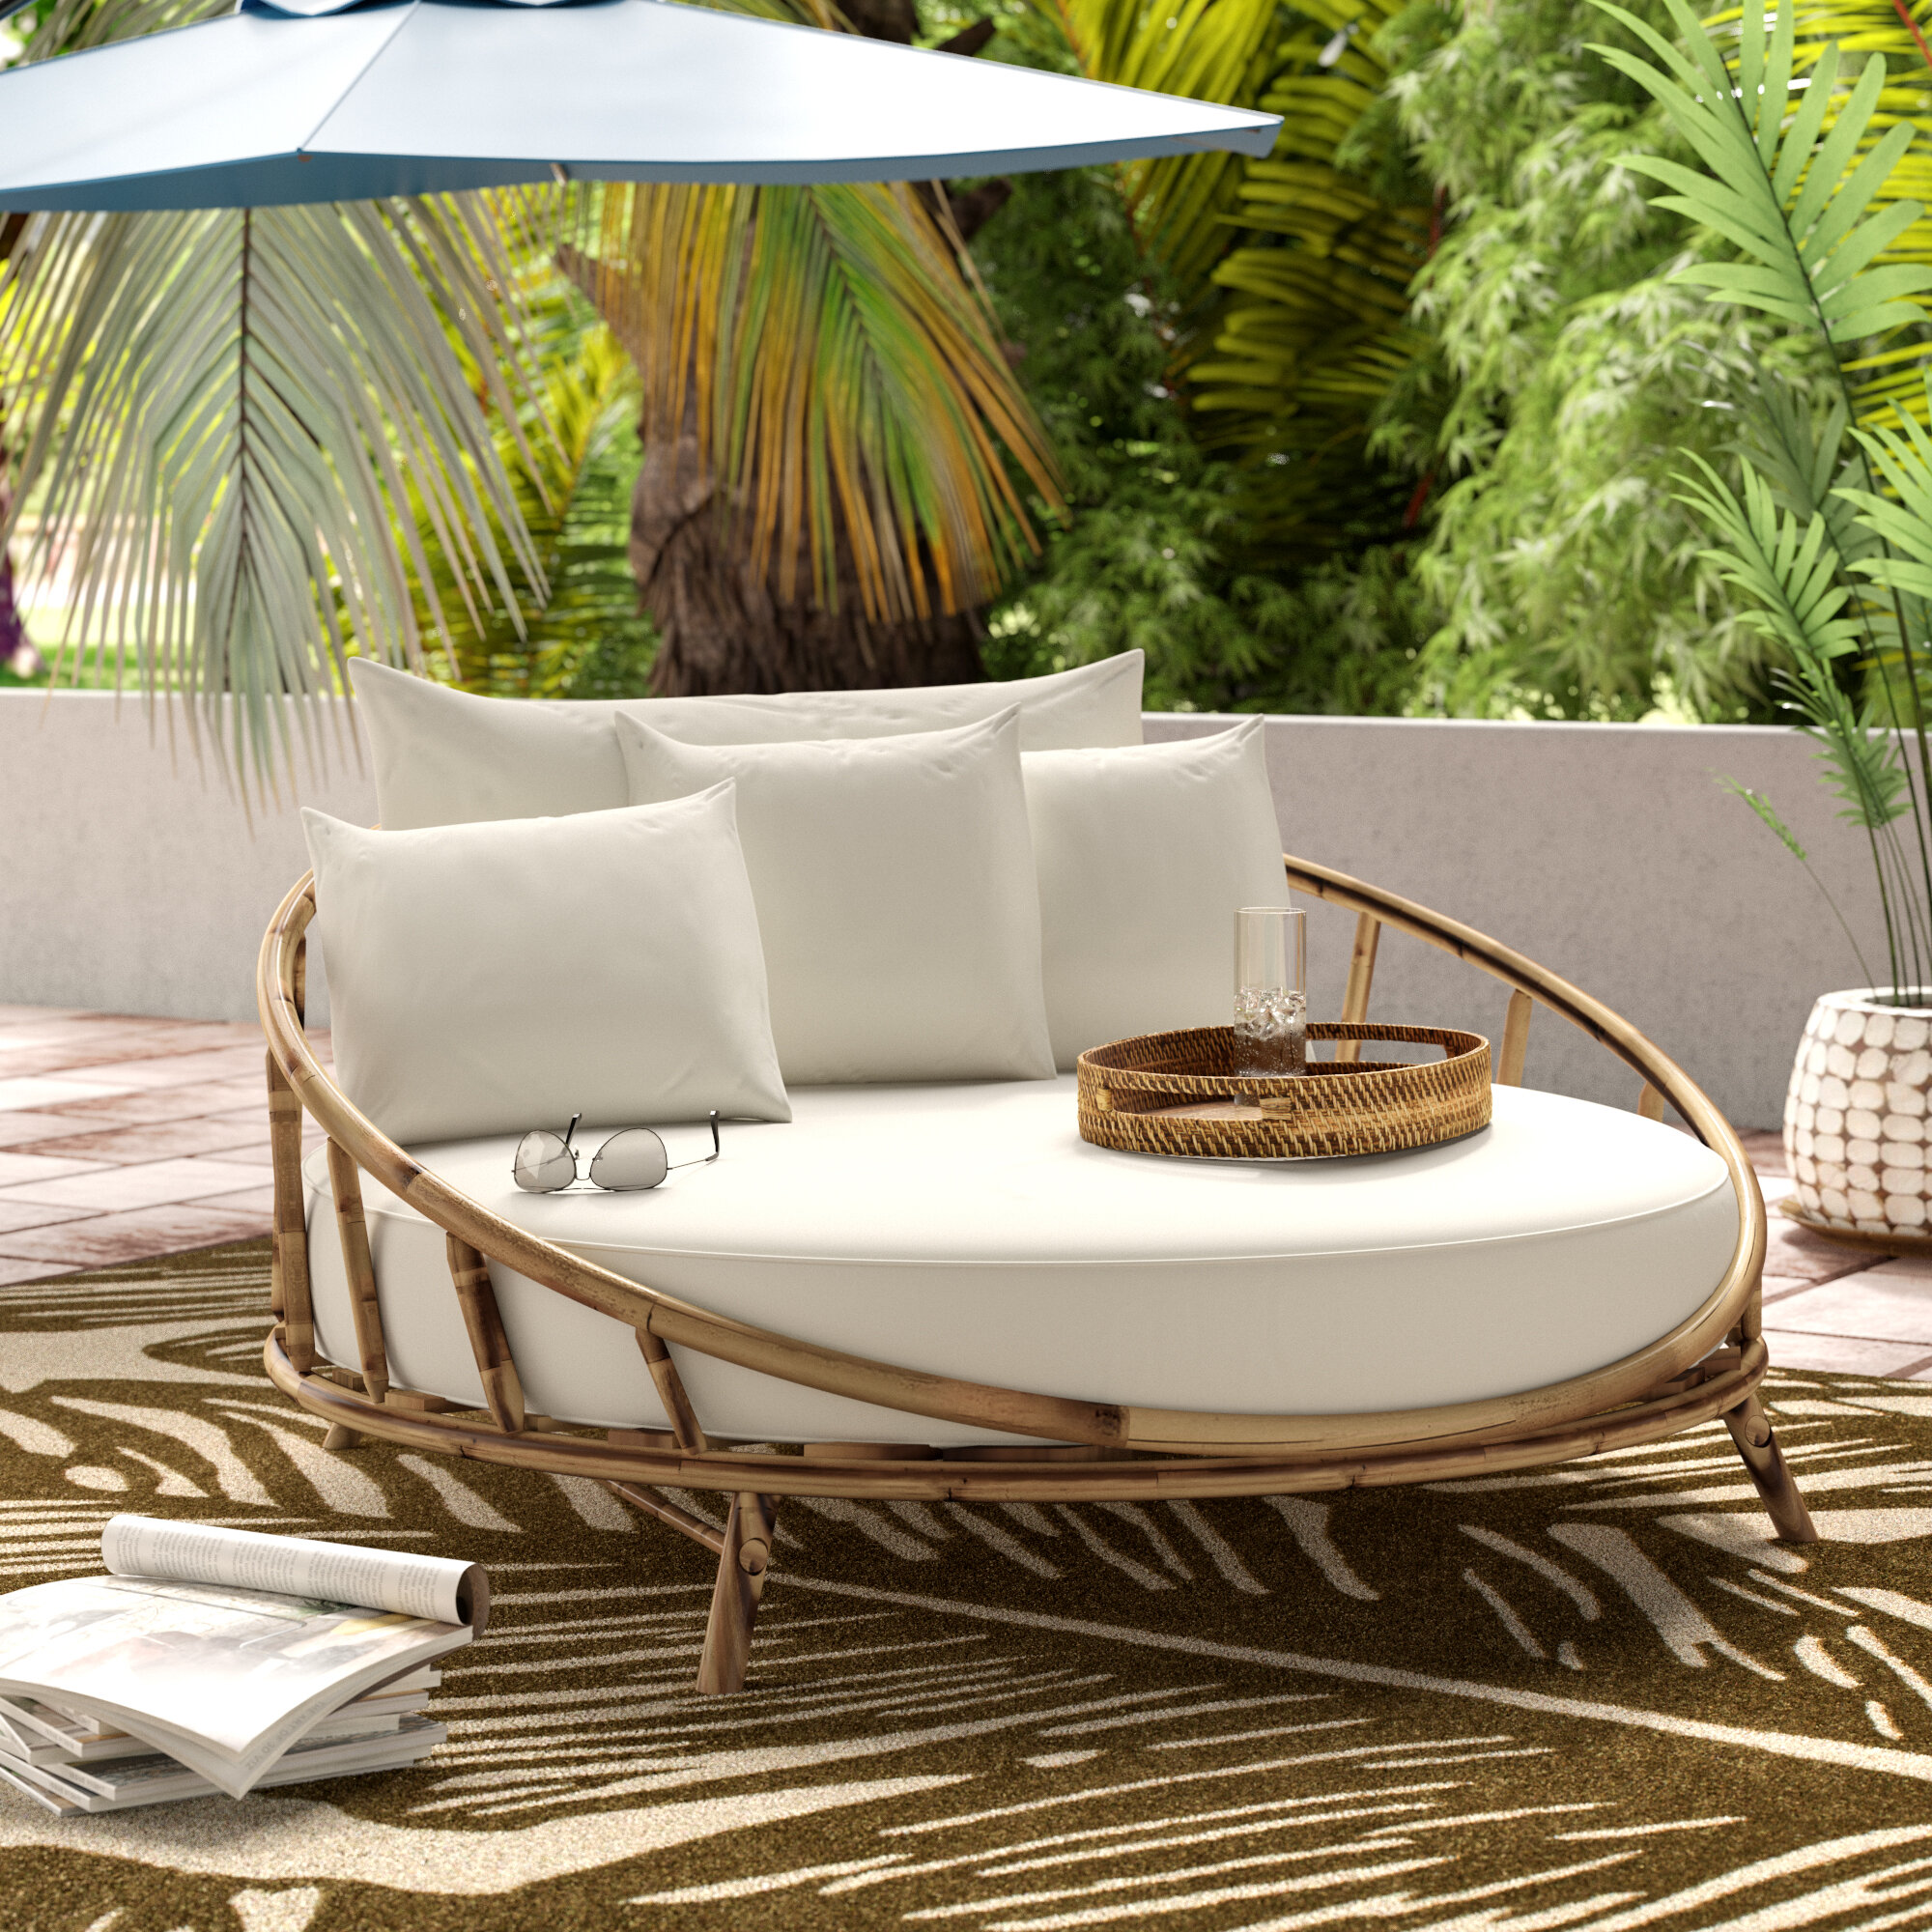 Olu bamboo large round patio daybed with cushions reviews joss main